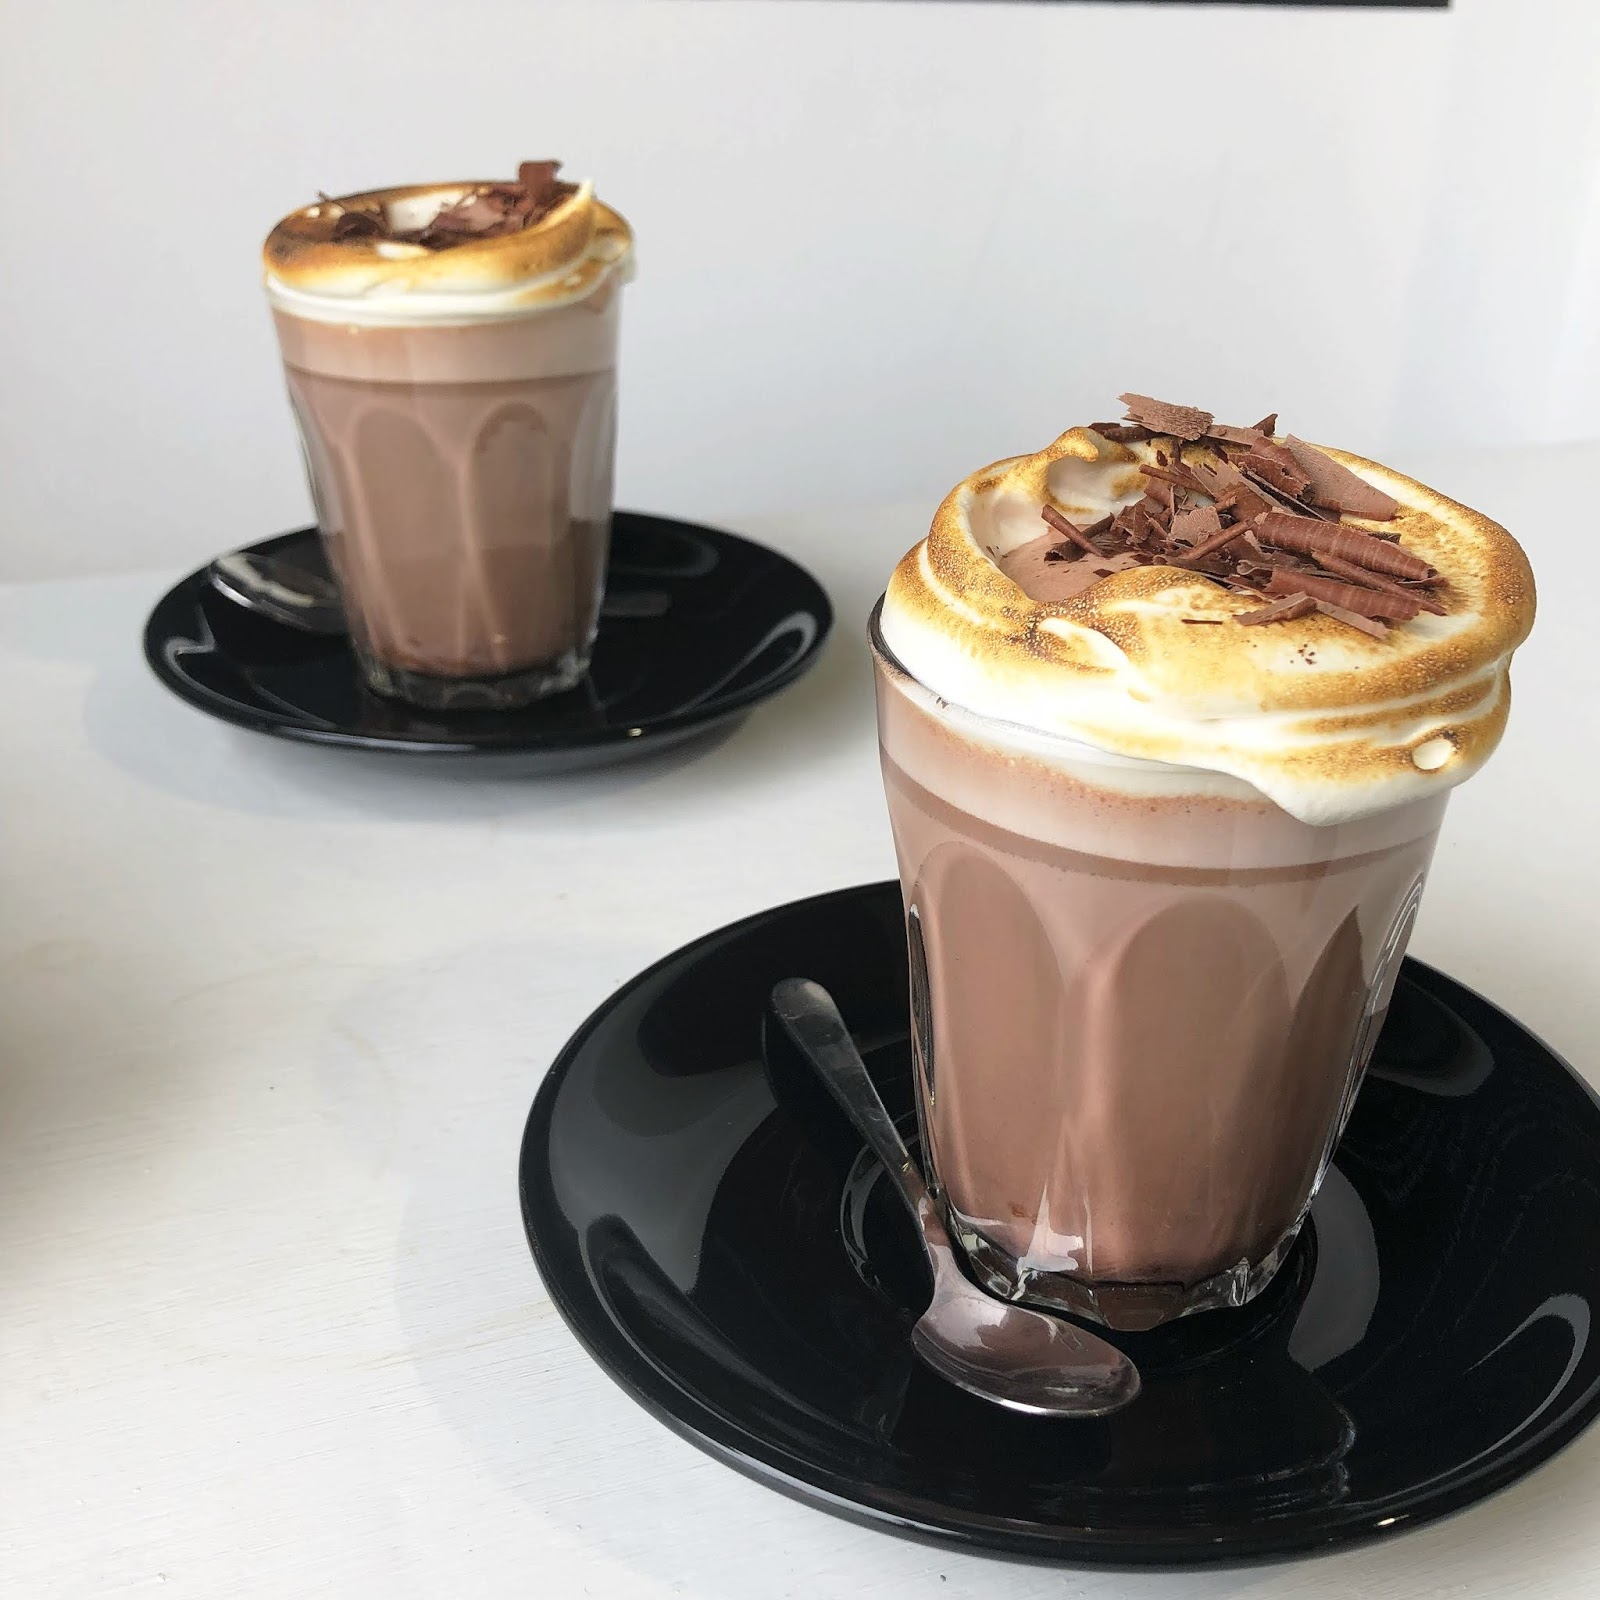 Best Hot Chocolate North East - Proven Doughnuts